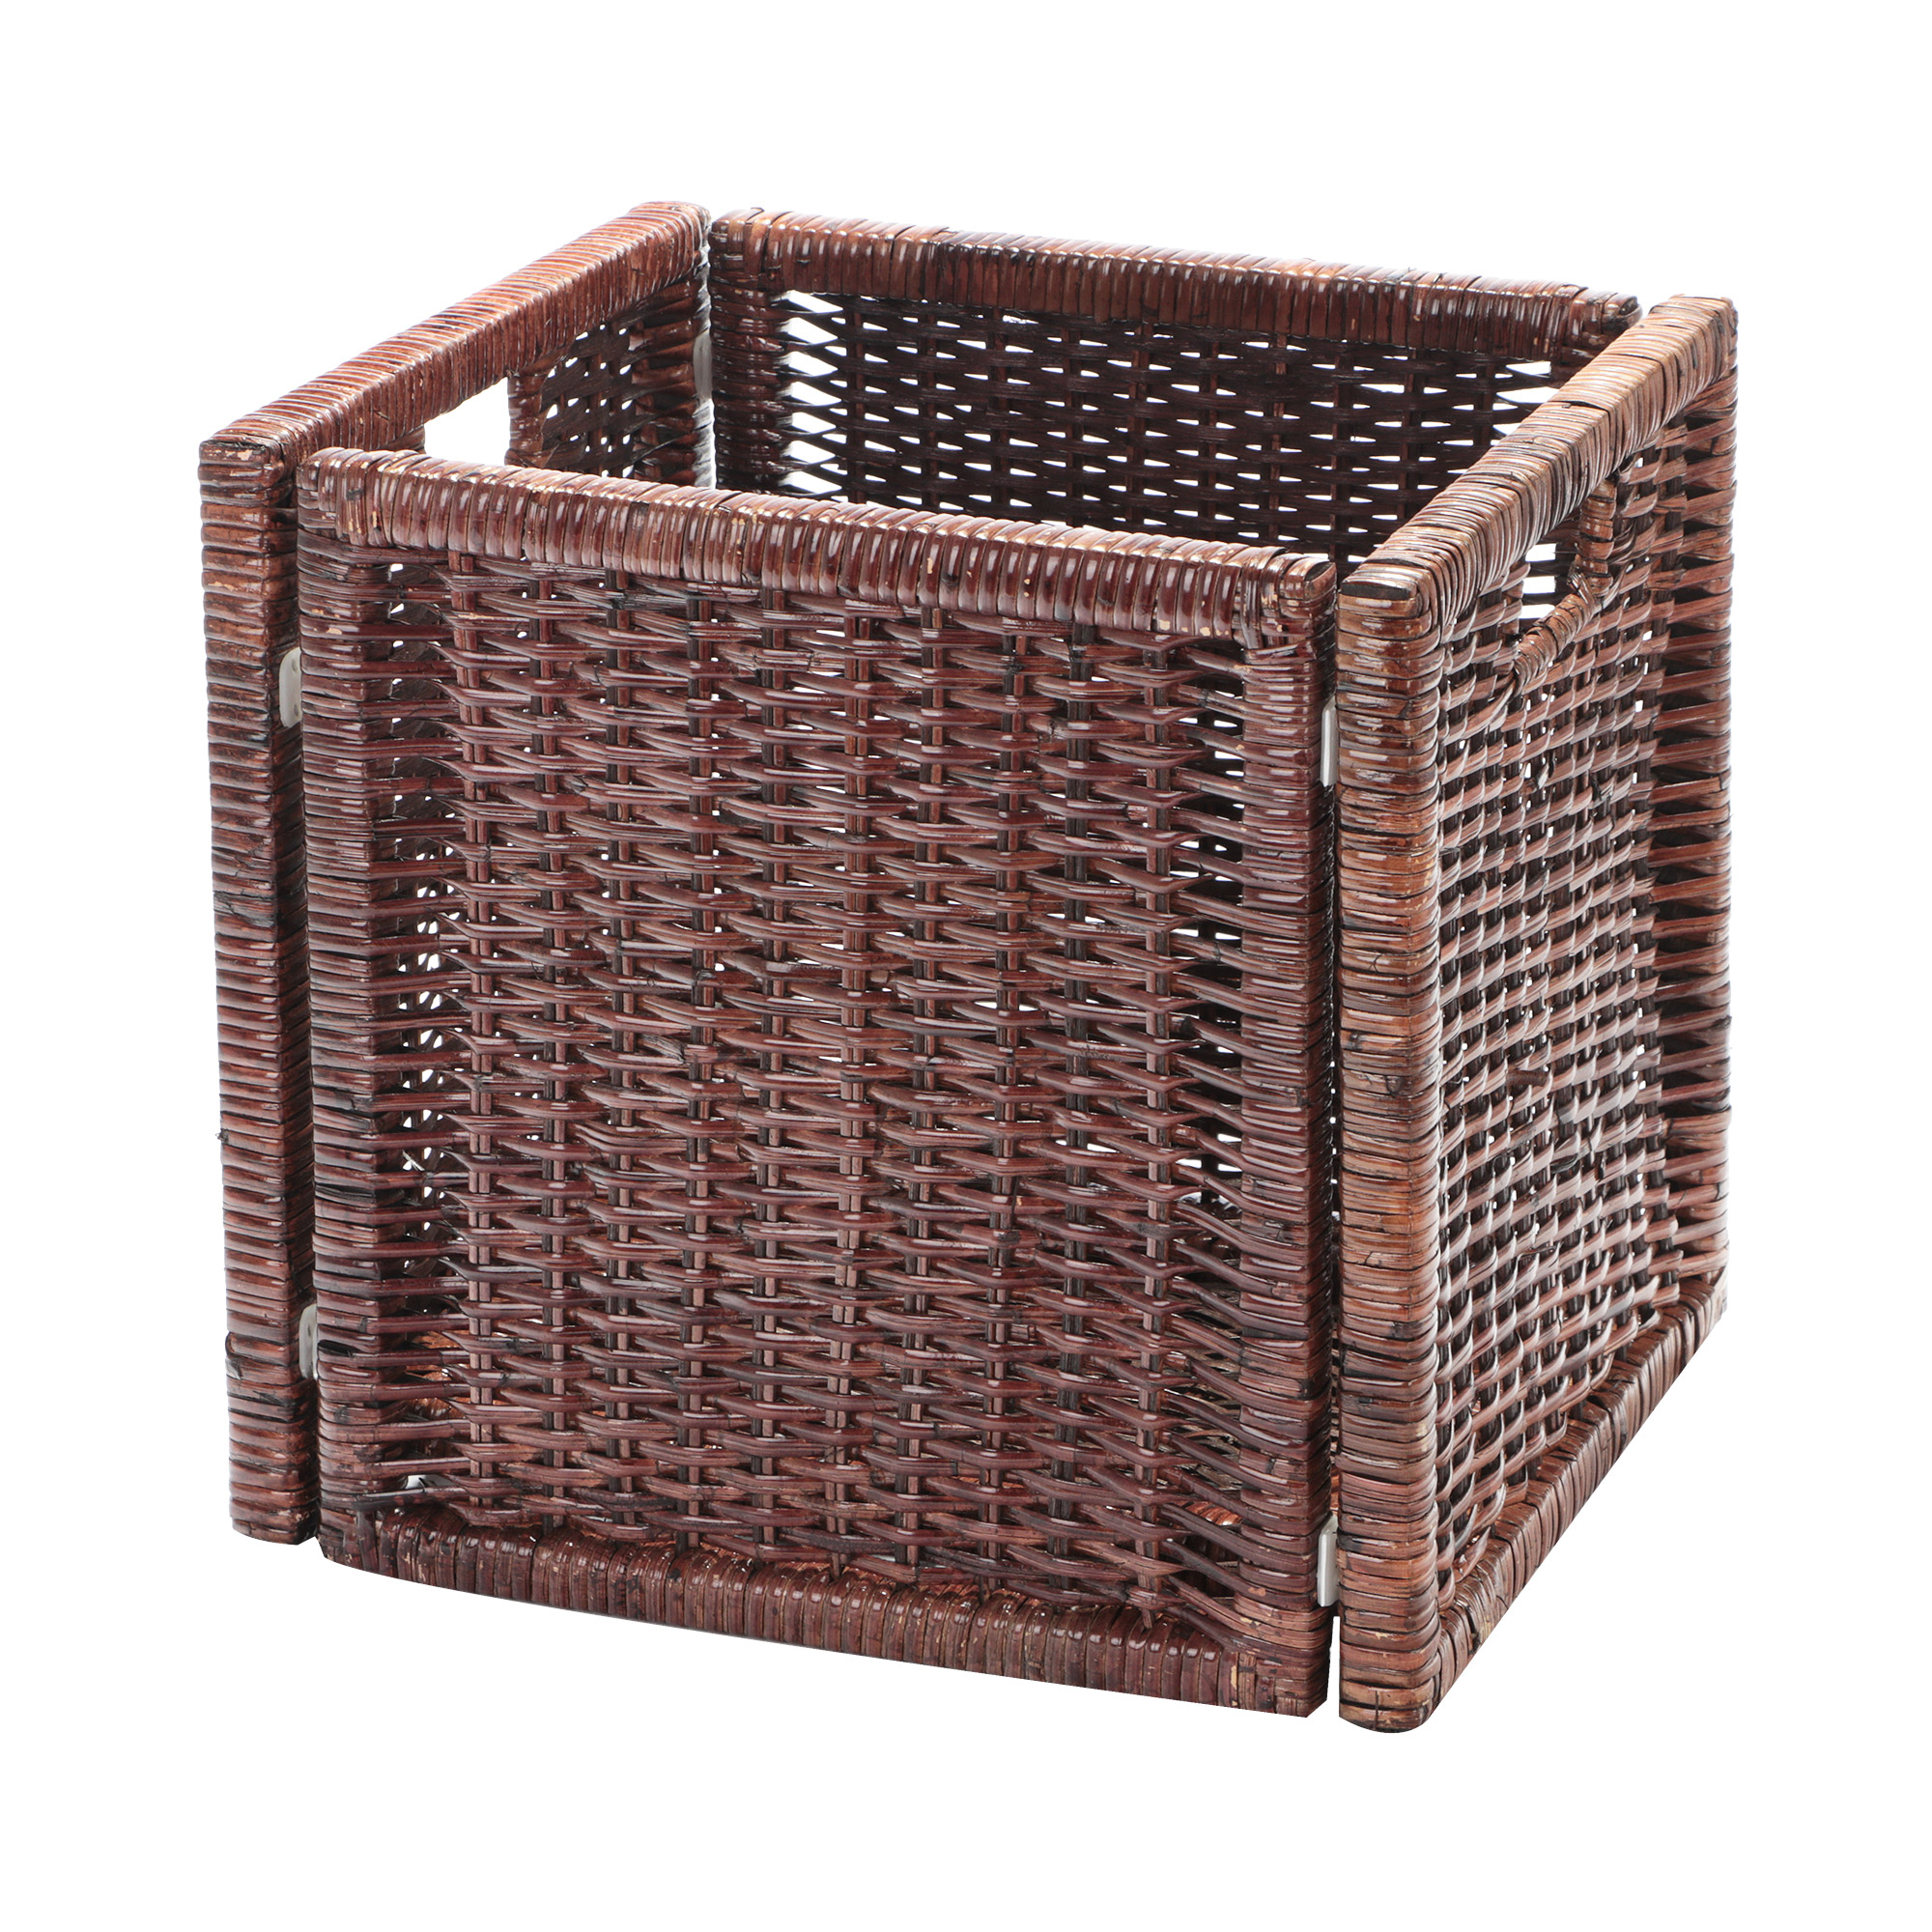 Корзина декоративная Rattan grand amsterdam md brown